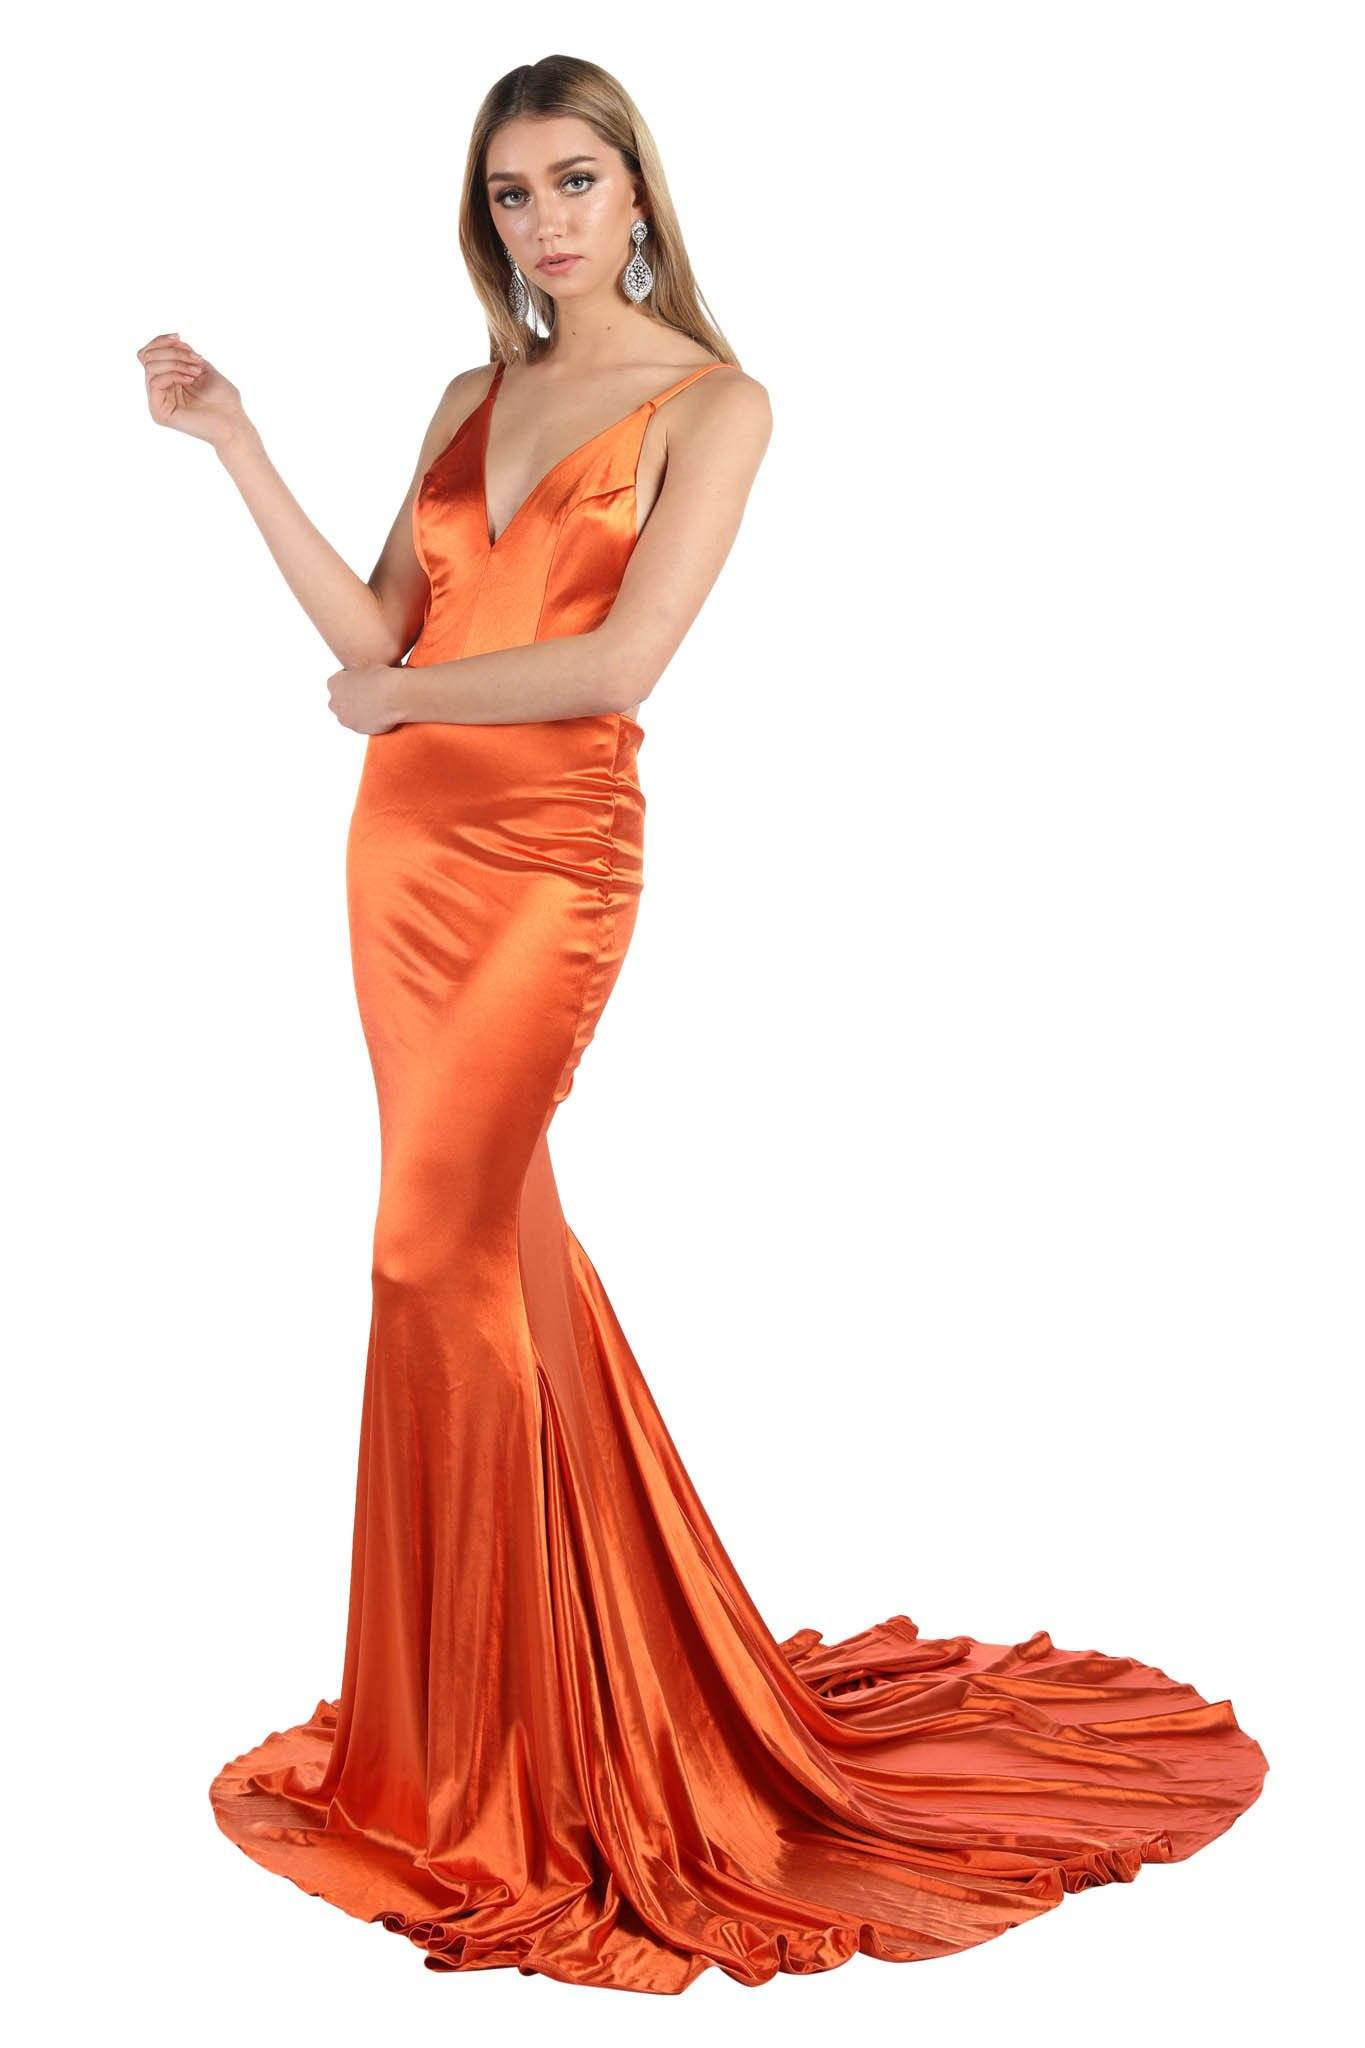 Burnt Orange Coloured Stretchy Satin Gown with Deep V Neck, Ruched V Open Back and Mermaid Train